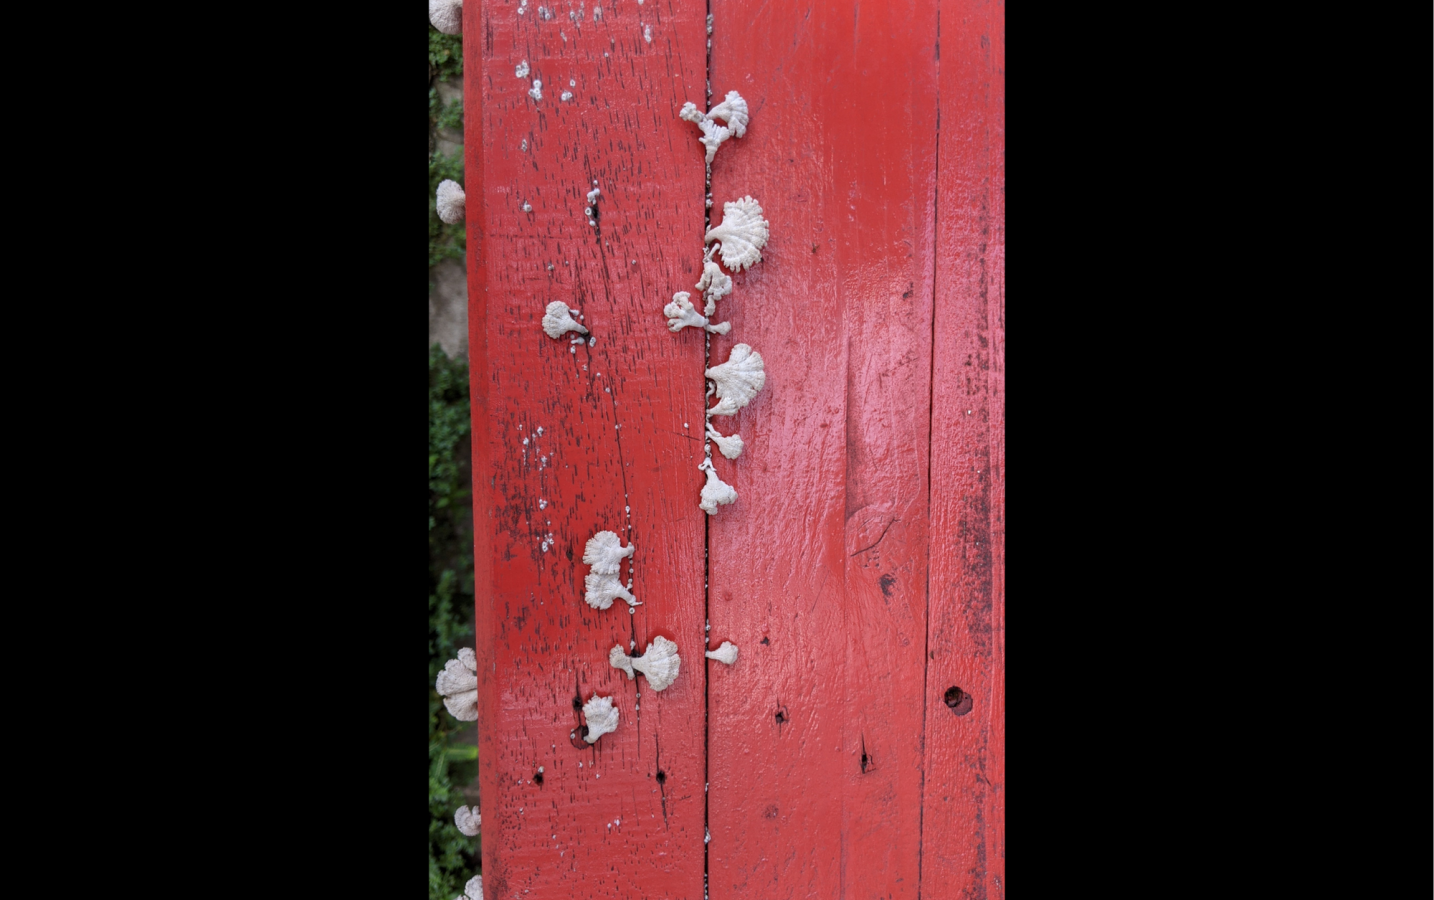 Mushroom on a red bench --anonymous community member